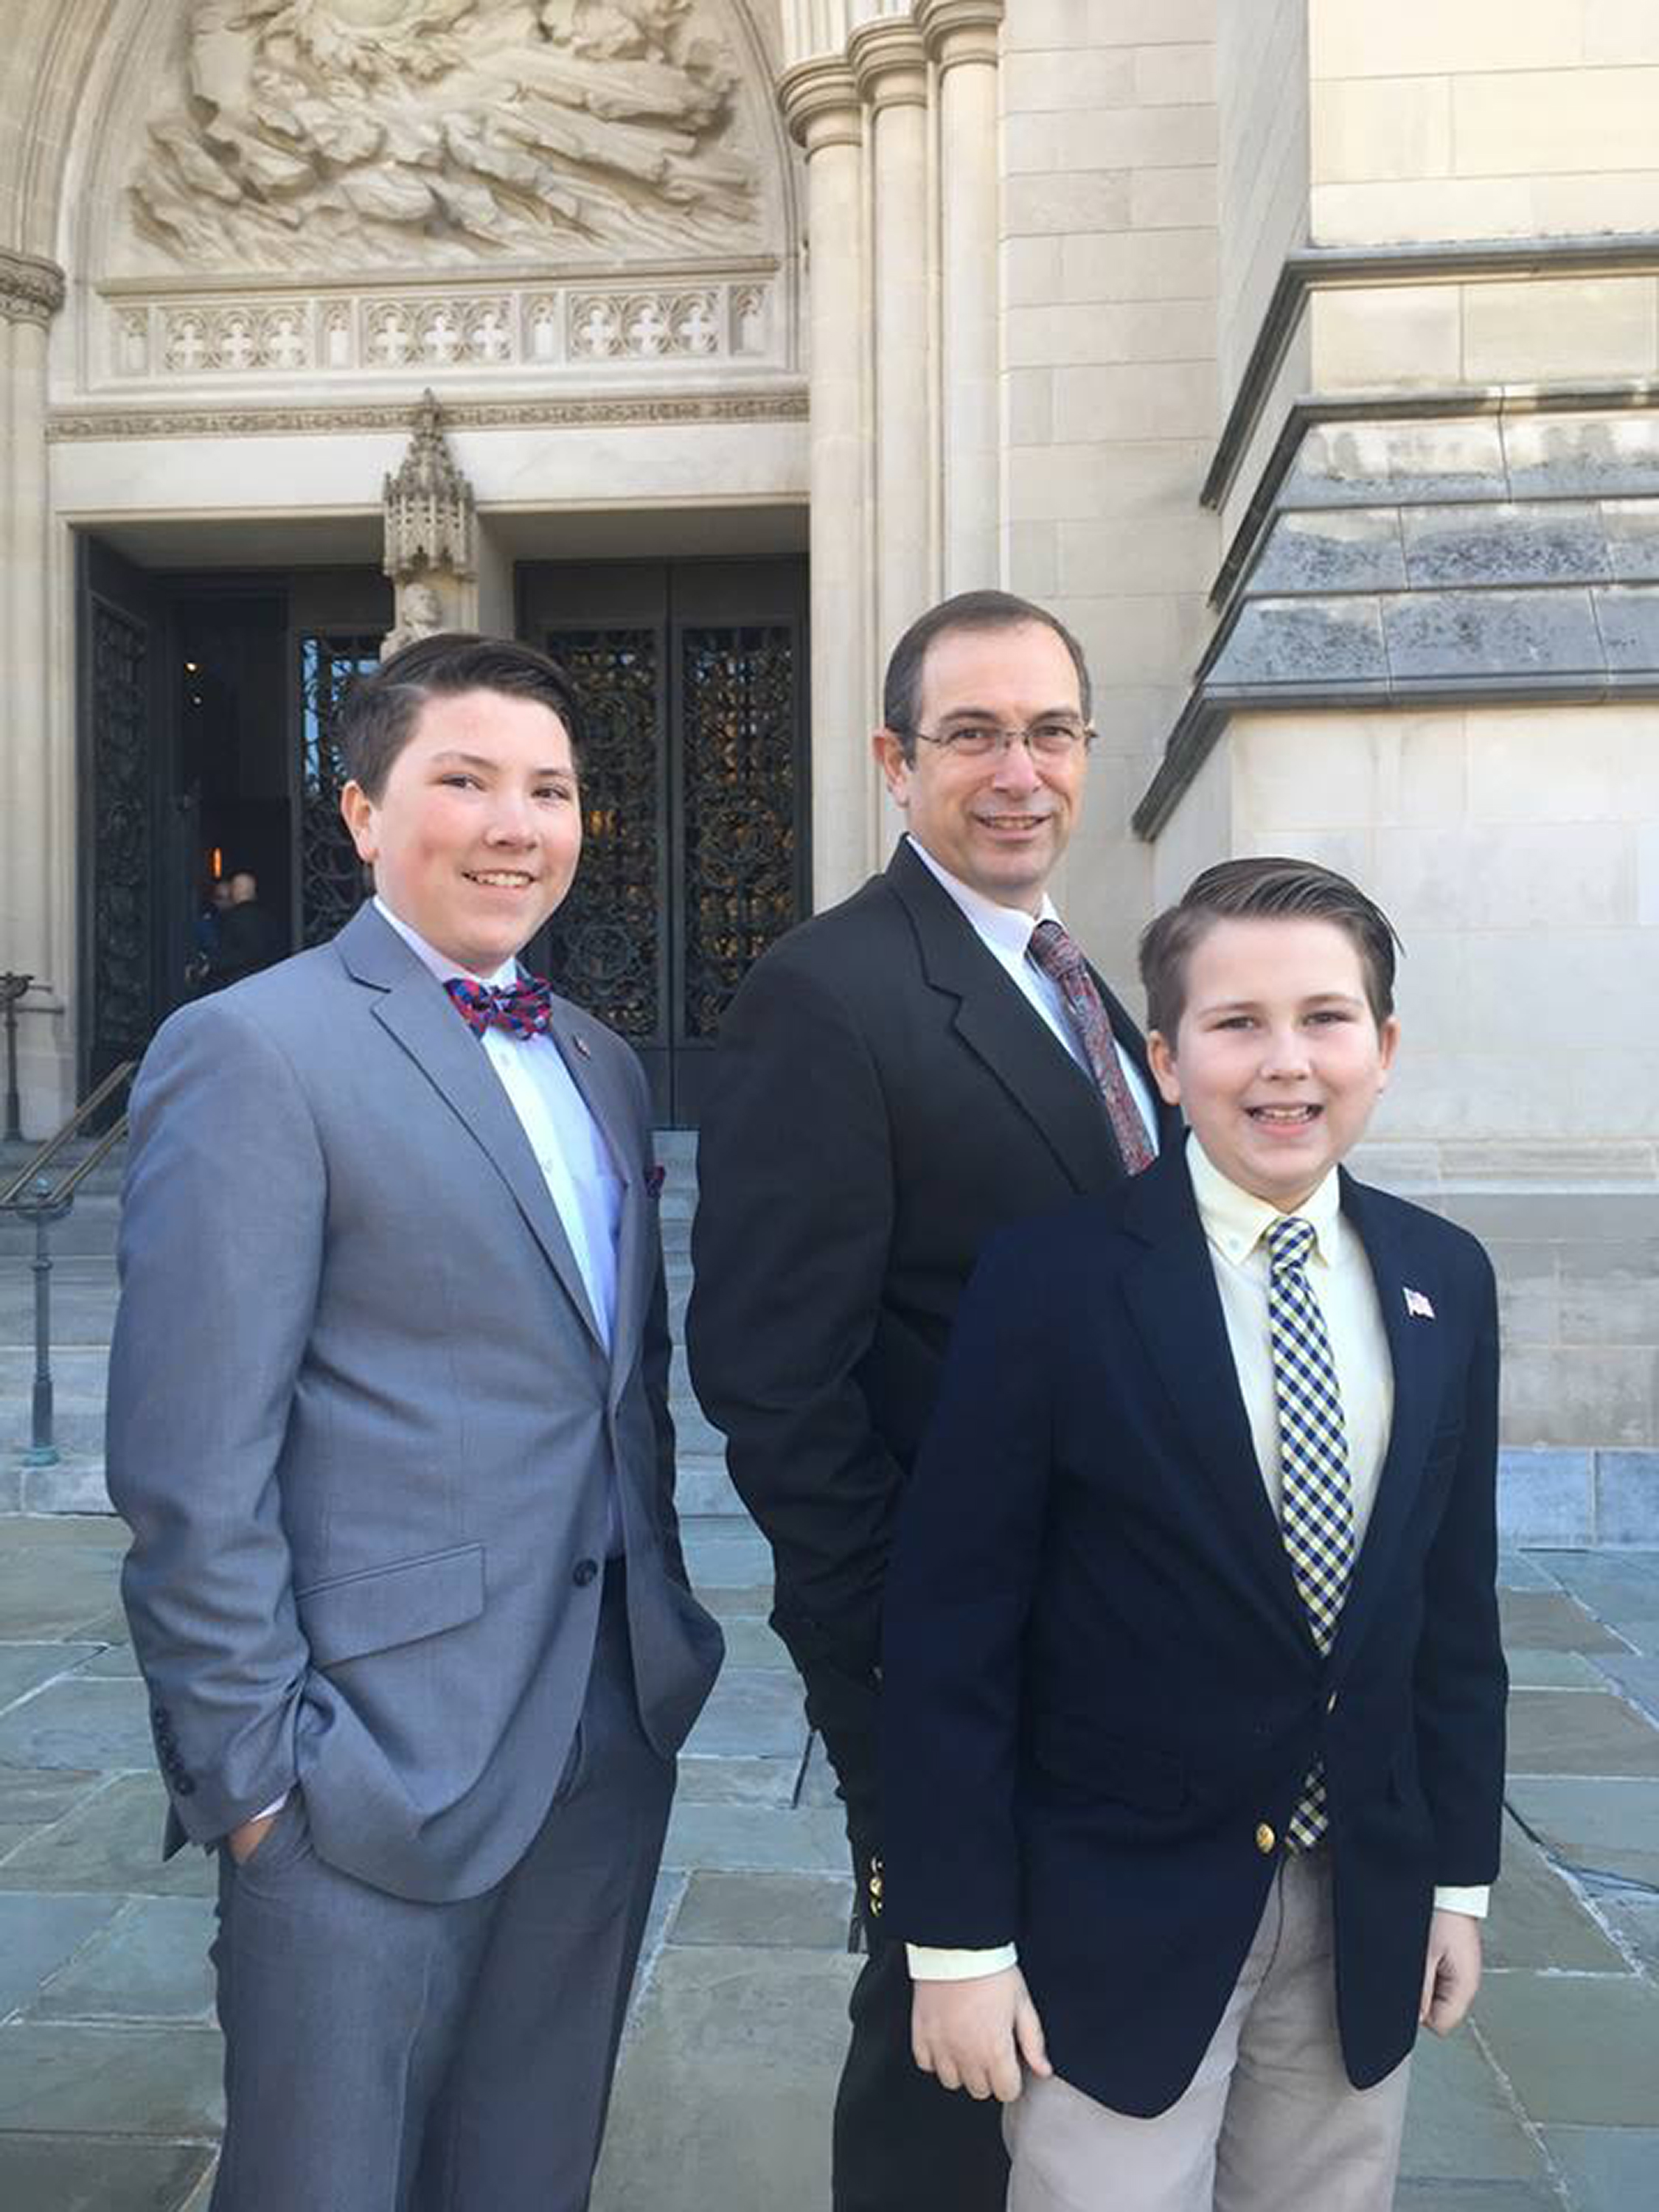 Daniel Wright and his two sons standing outside of the cathedral posing for a picture.